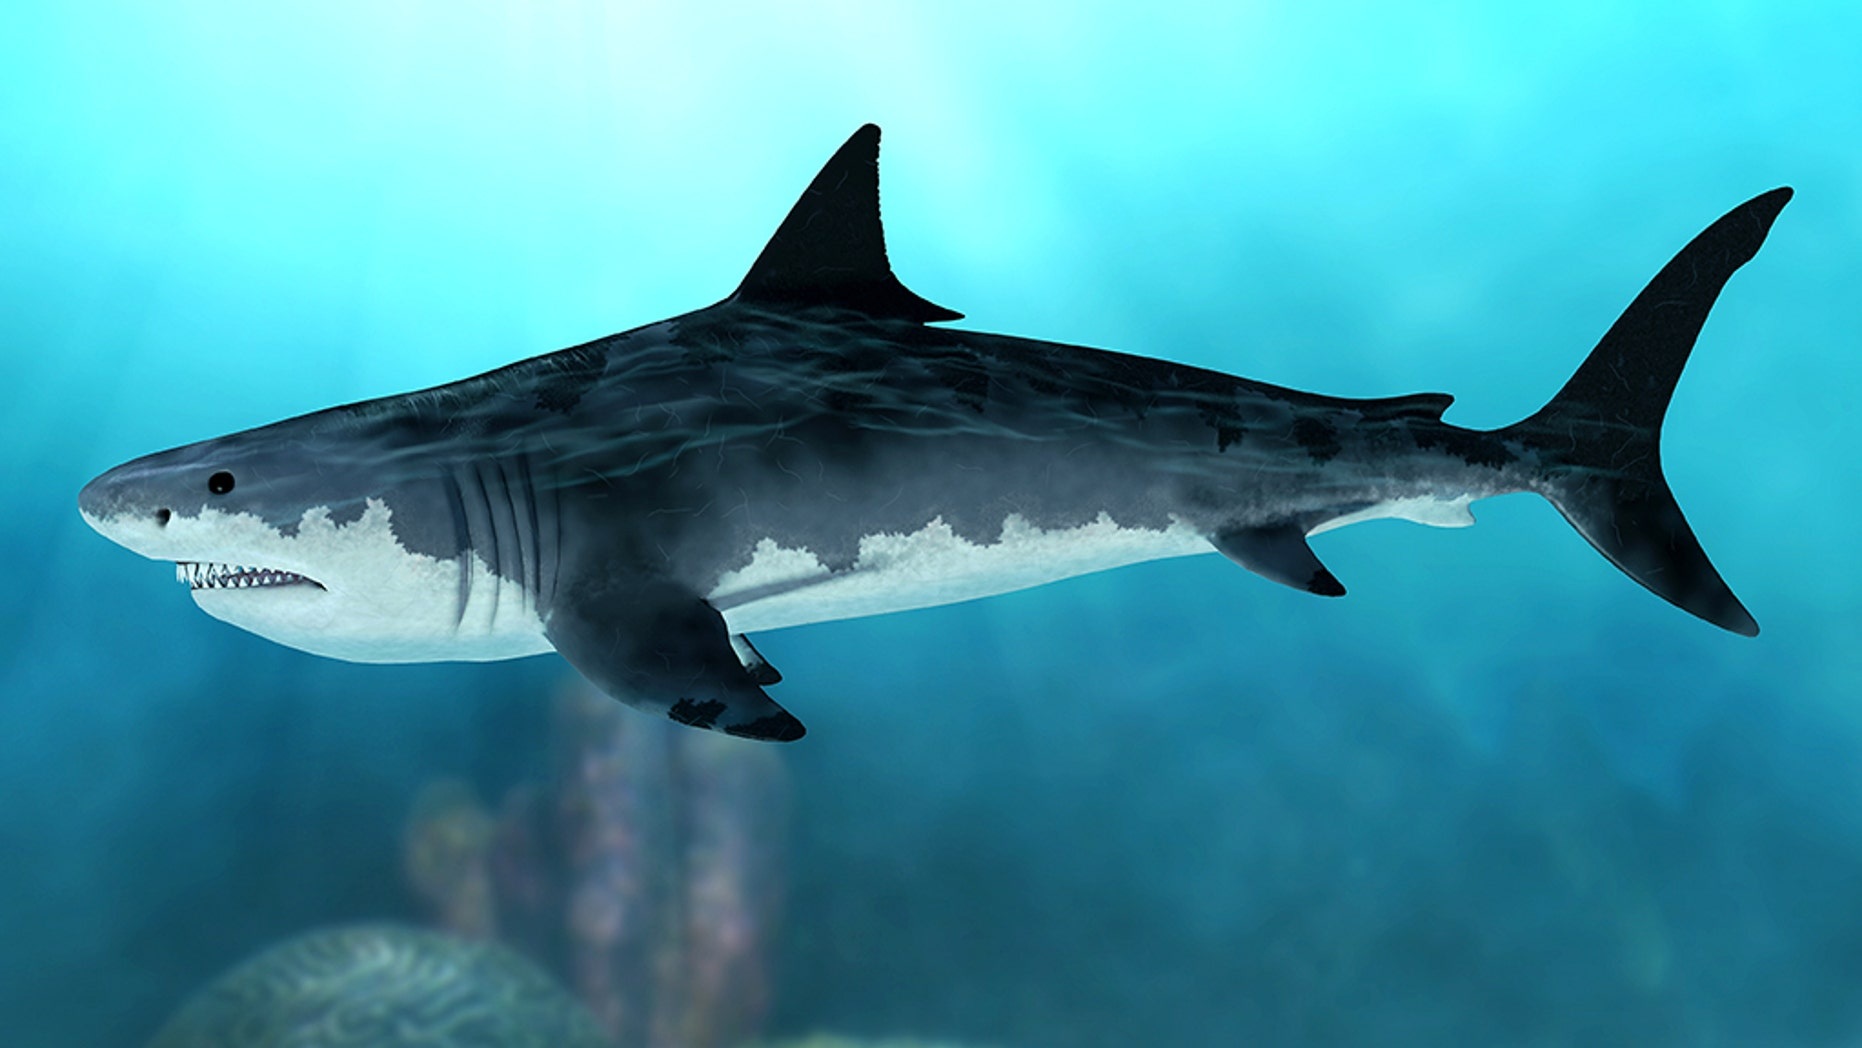 3D rendering of an extinct Megalodon shark in the seas of the Cenozoic Era.